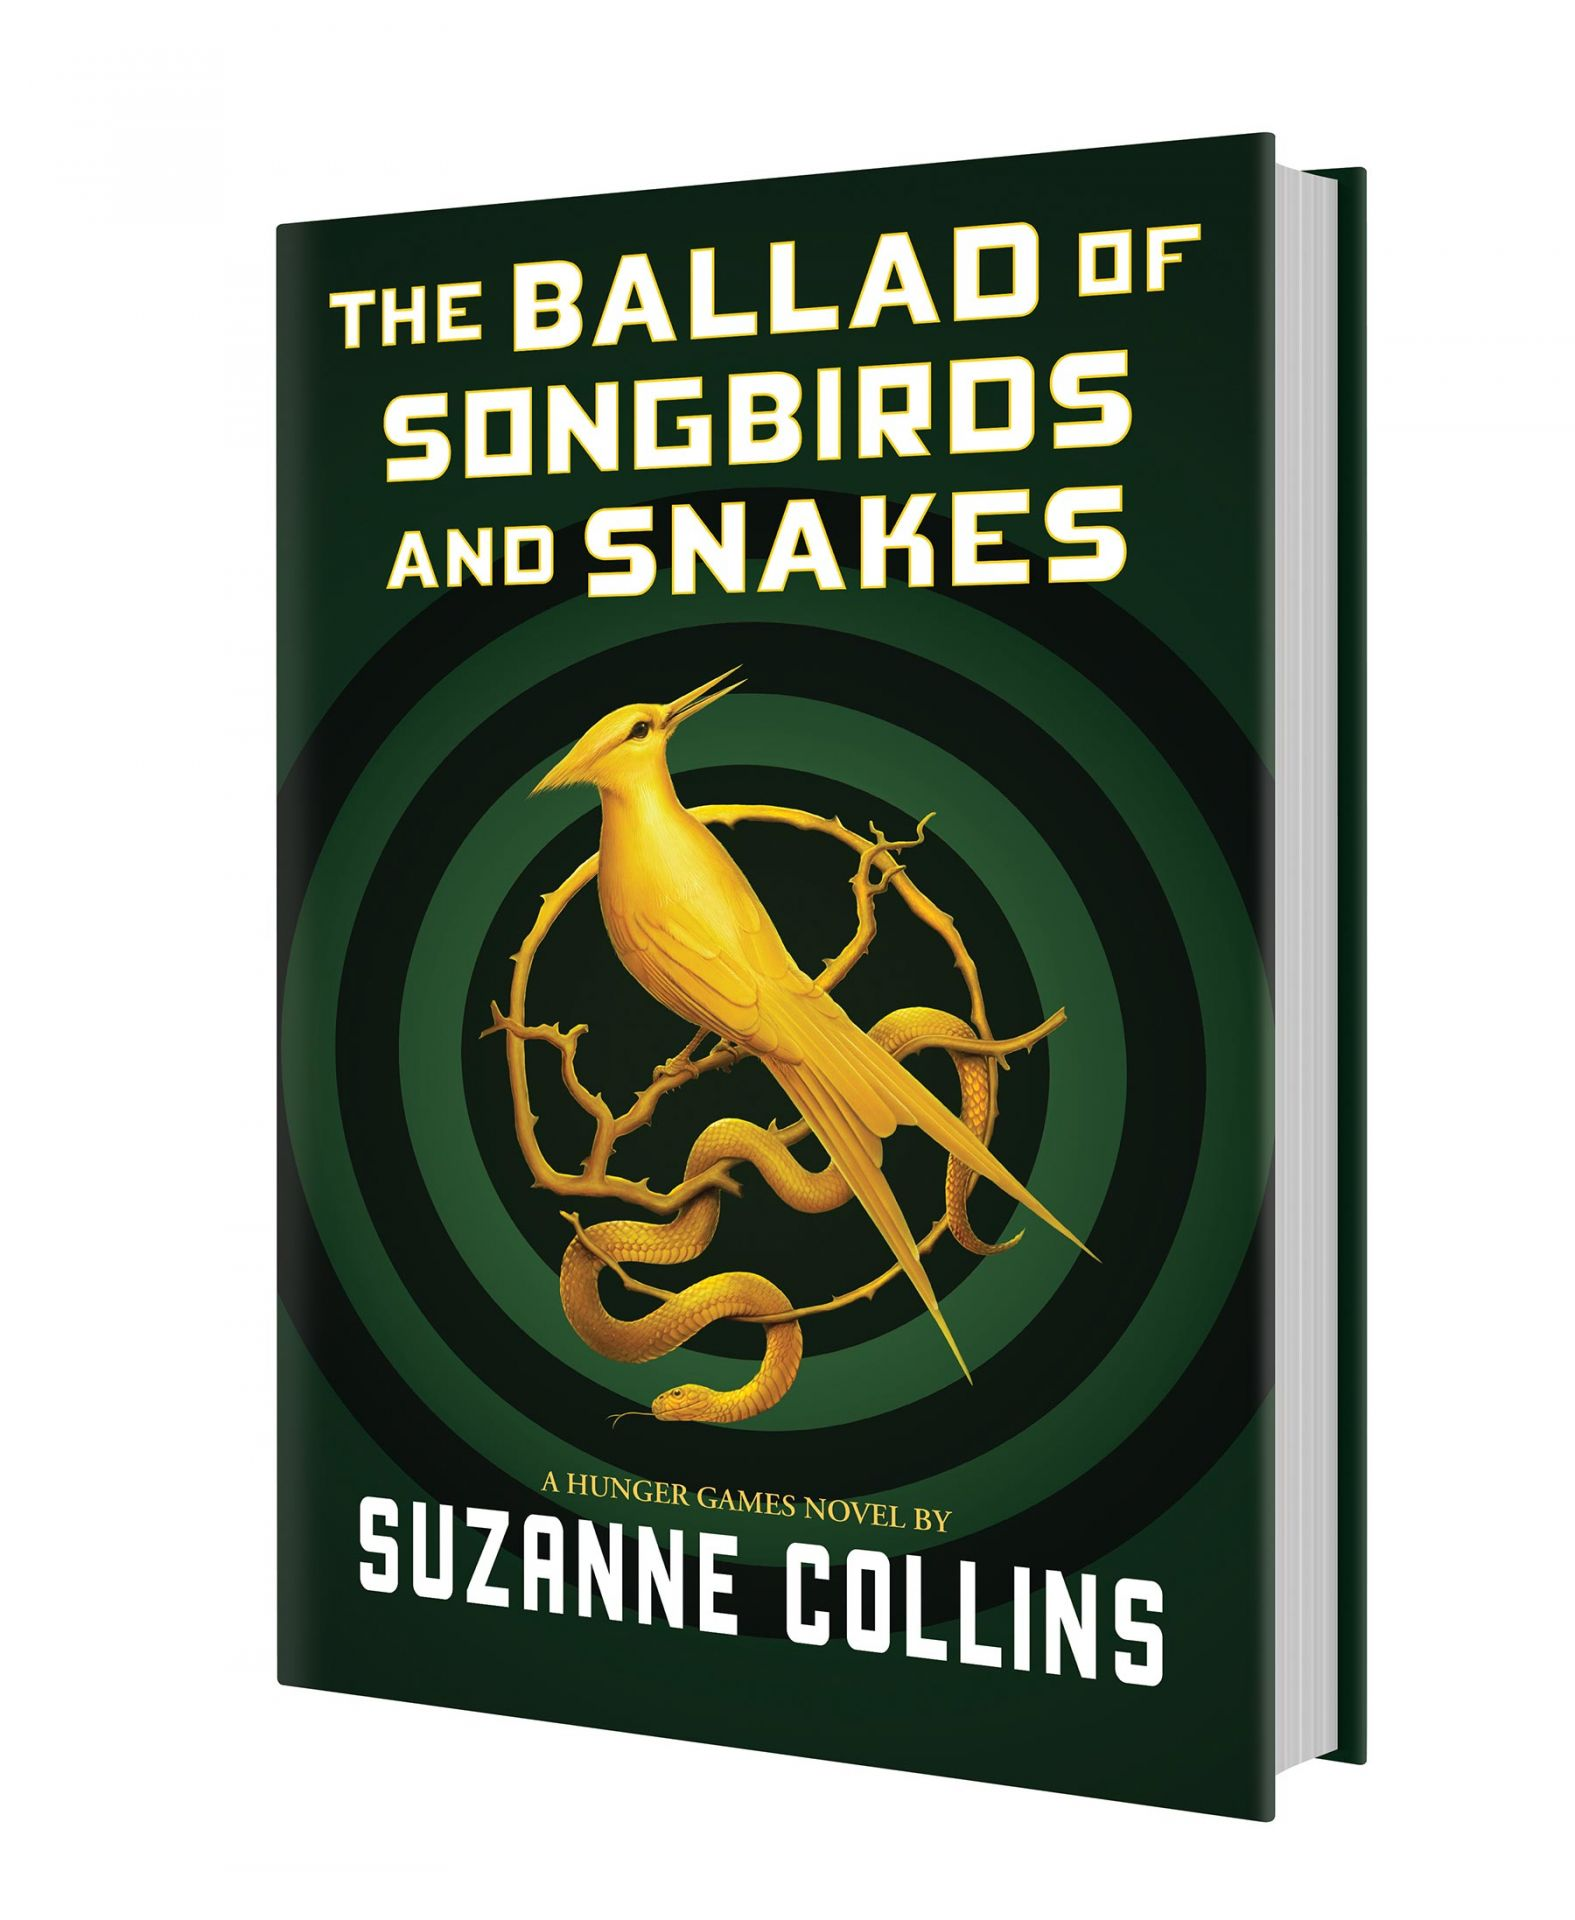 Jogos Vorazes - The Ballad of Songbirds and Snakes